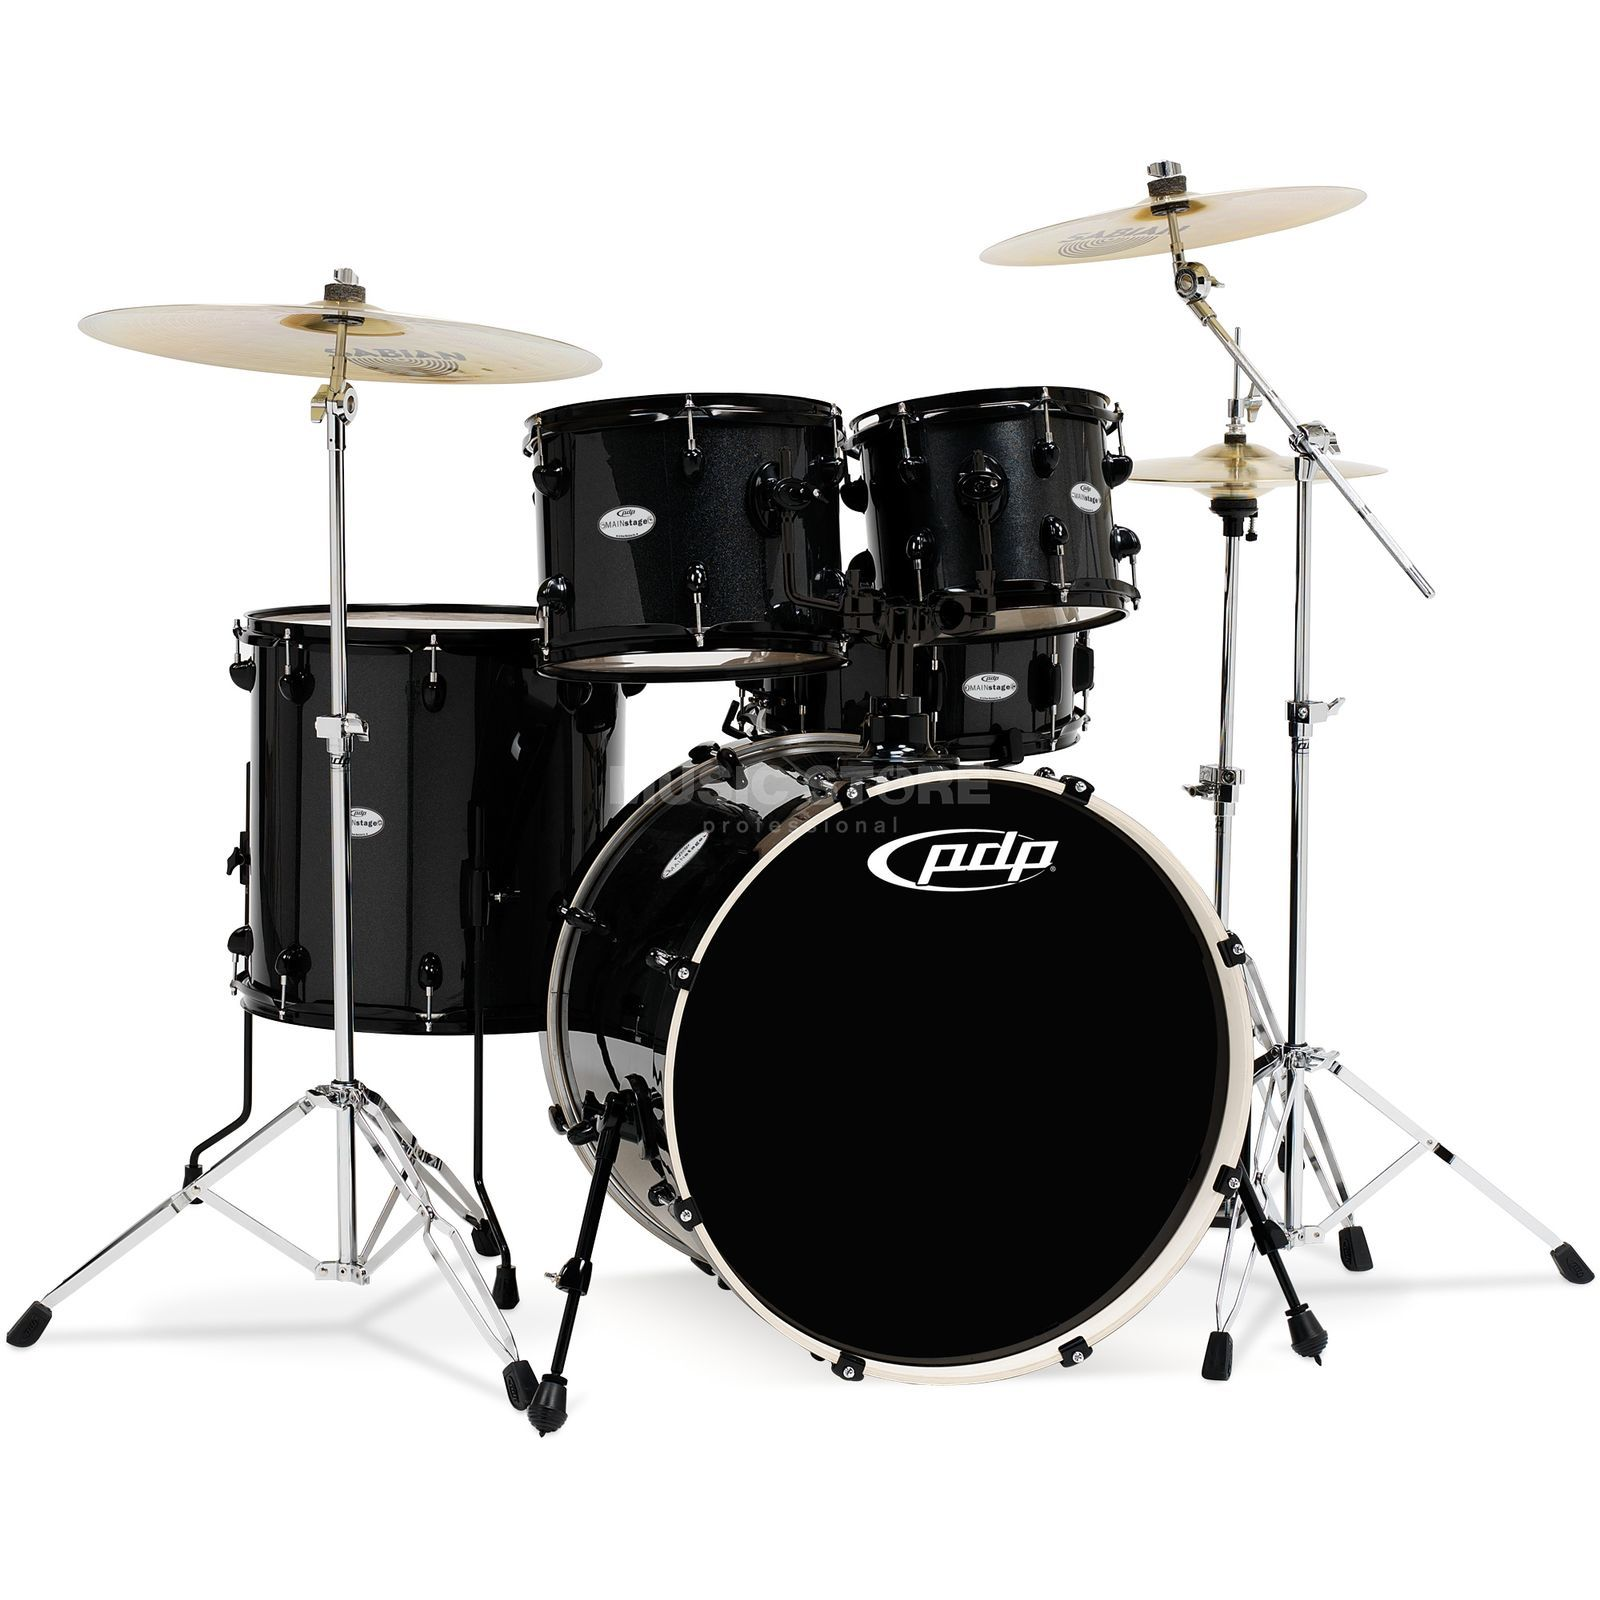 Drum Workshop PDP Mainstage Rock, Black Metallic, Black HW Produktbillede